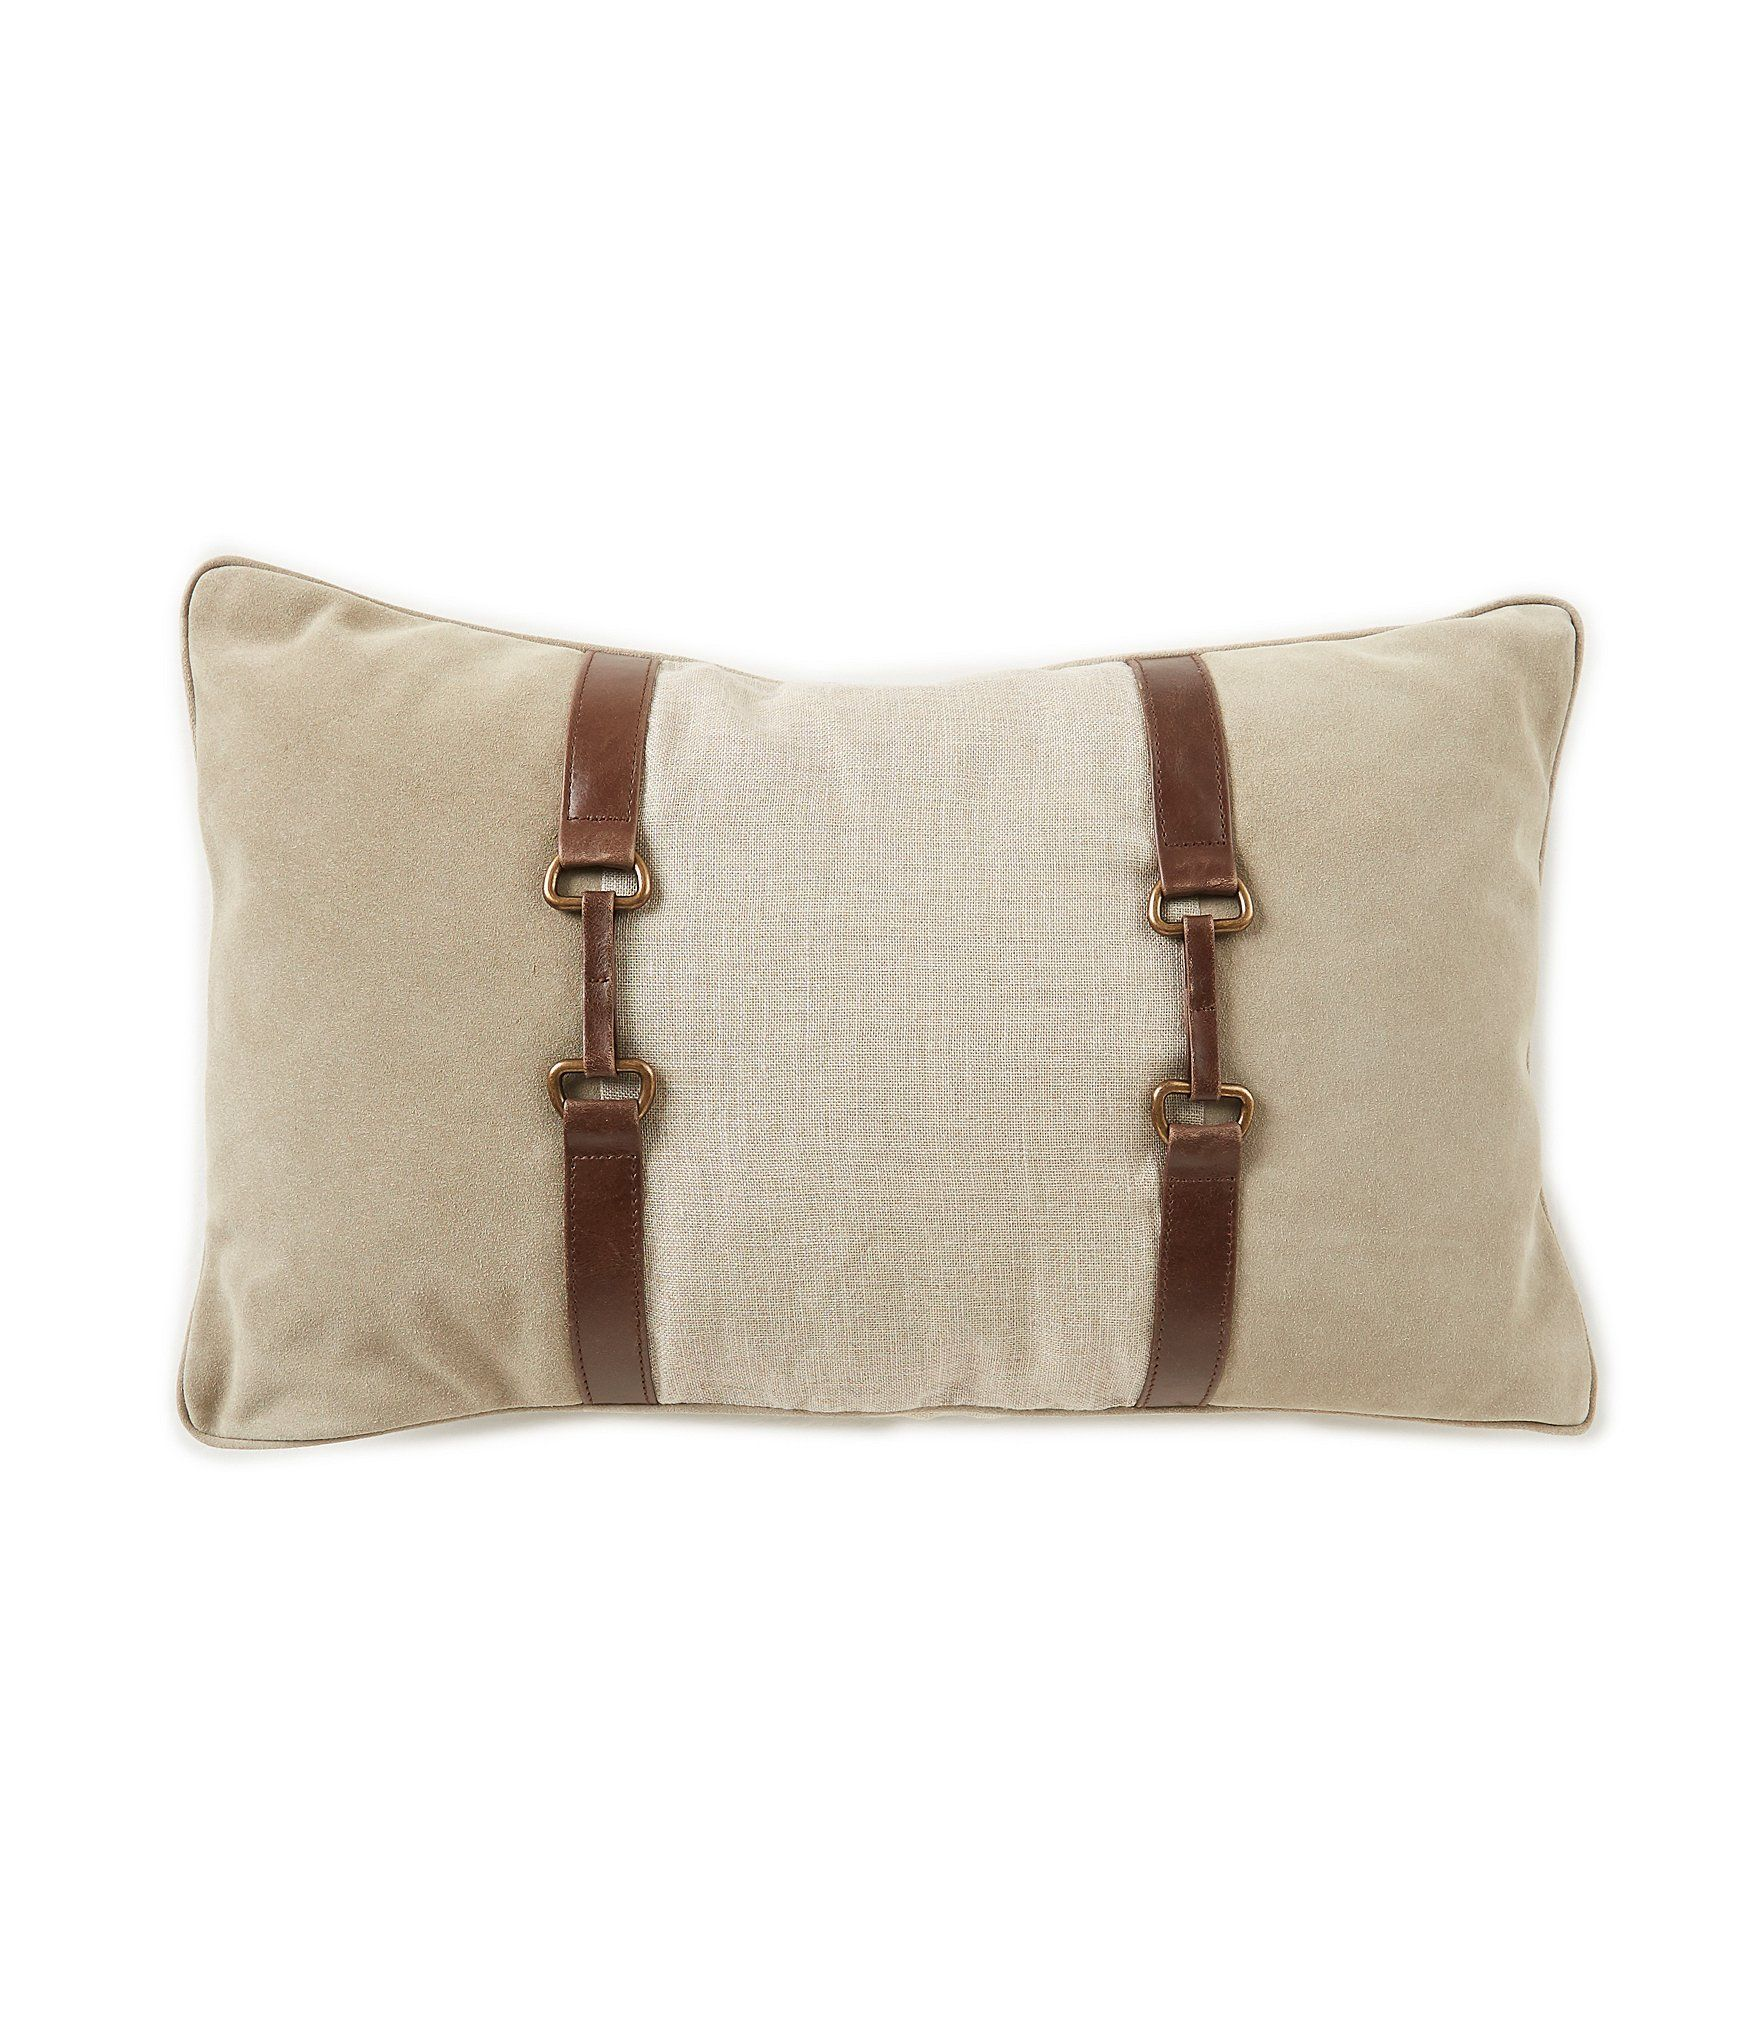 Shop For Southern Living Harvest Collection Leather